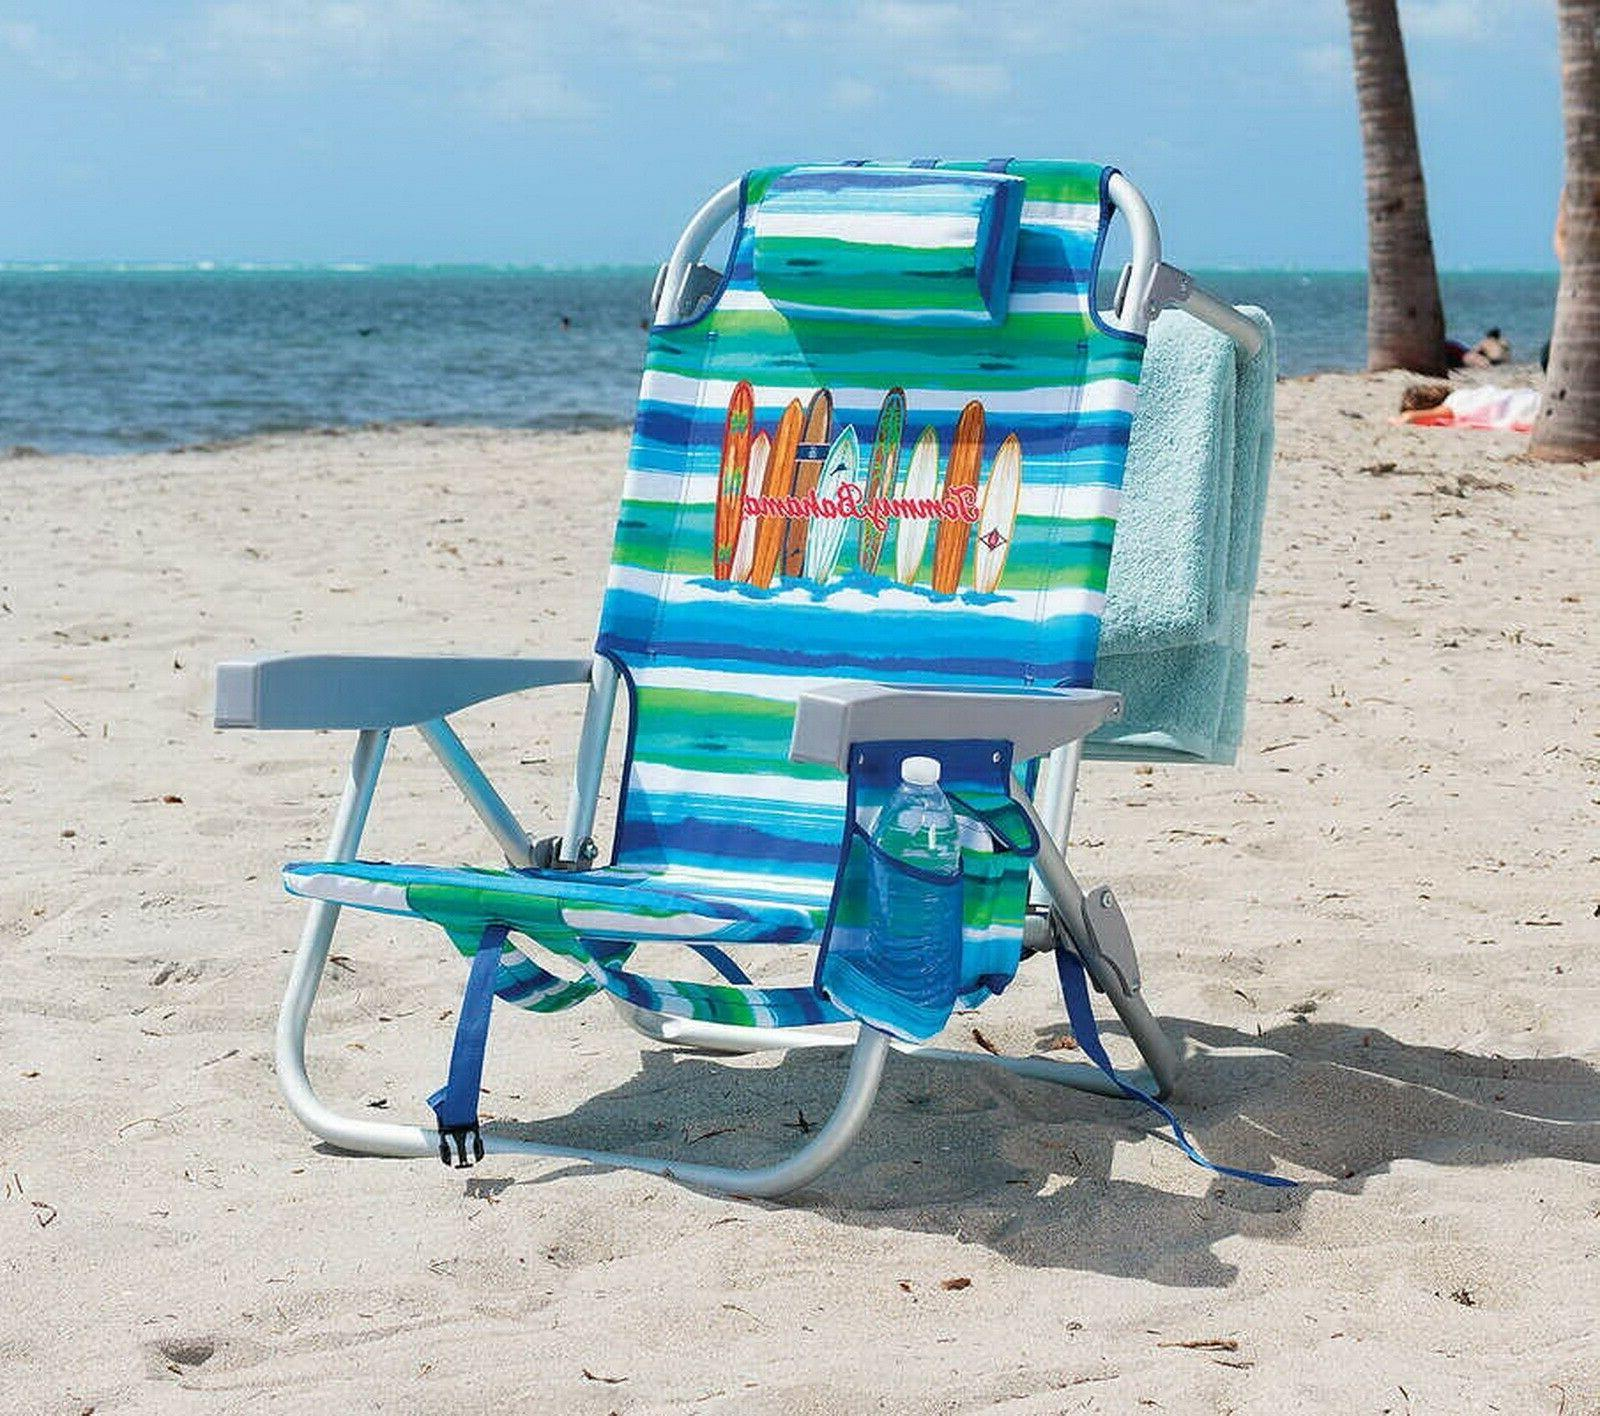 Tommy Bahama Backpack Beach Chair Portable Seat with Drink Holder Pocket